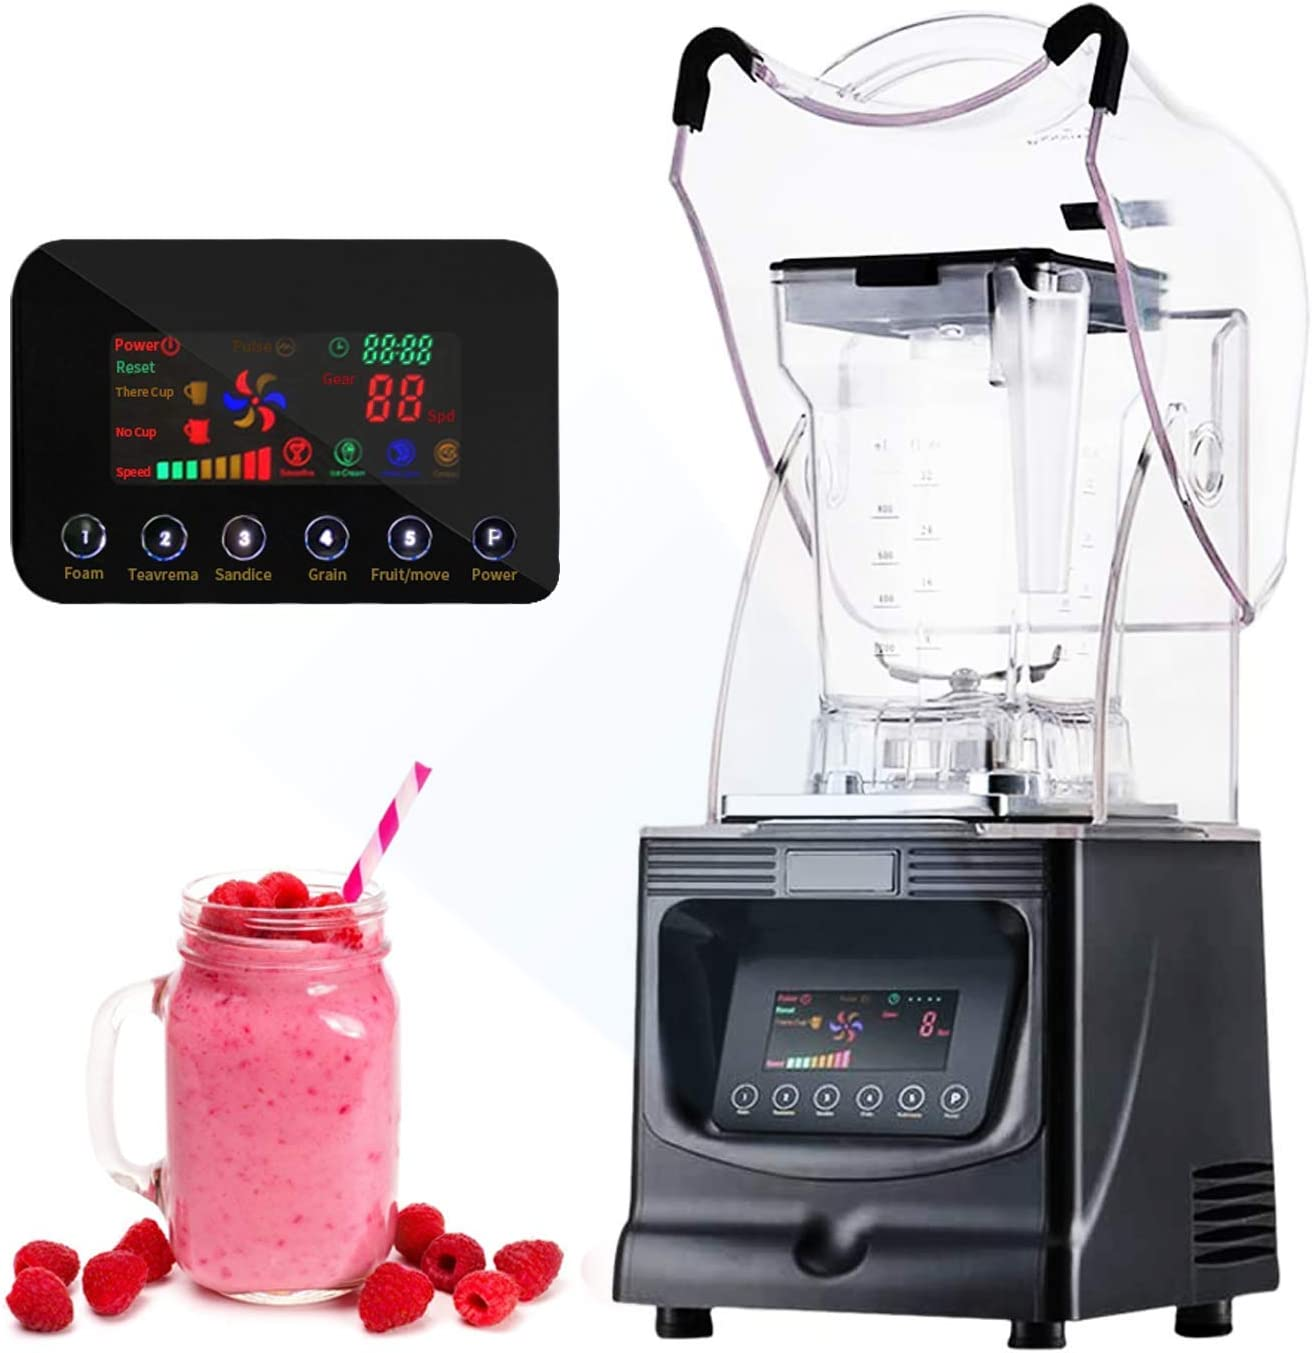 JIAWANSHUN Commercial Smoothie Blenders Heavy Duty 52oz Professional Ice Blender 1800W Ice Crusher Quiet&Speed Control for Milkshakes Juices Nut Butter (110V)